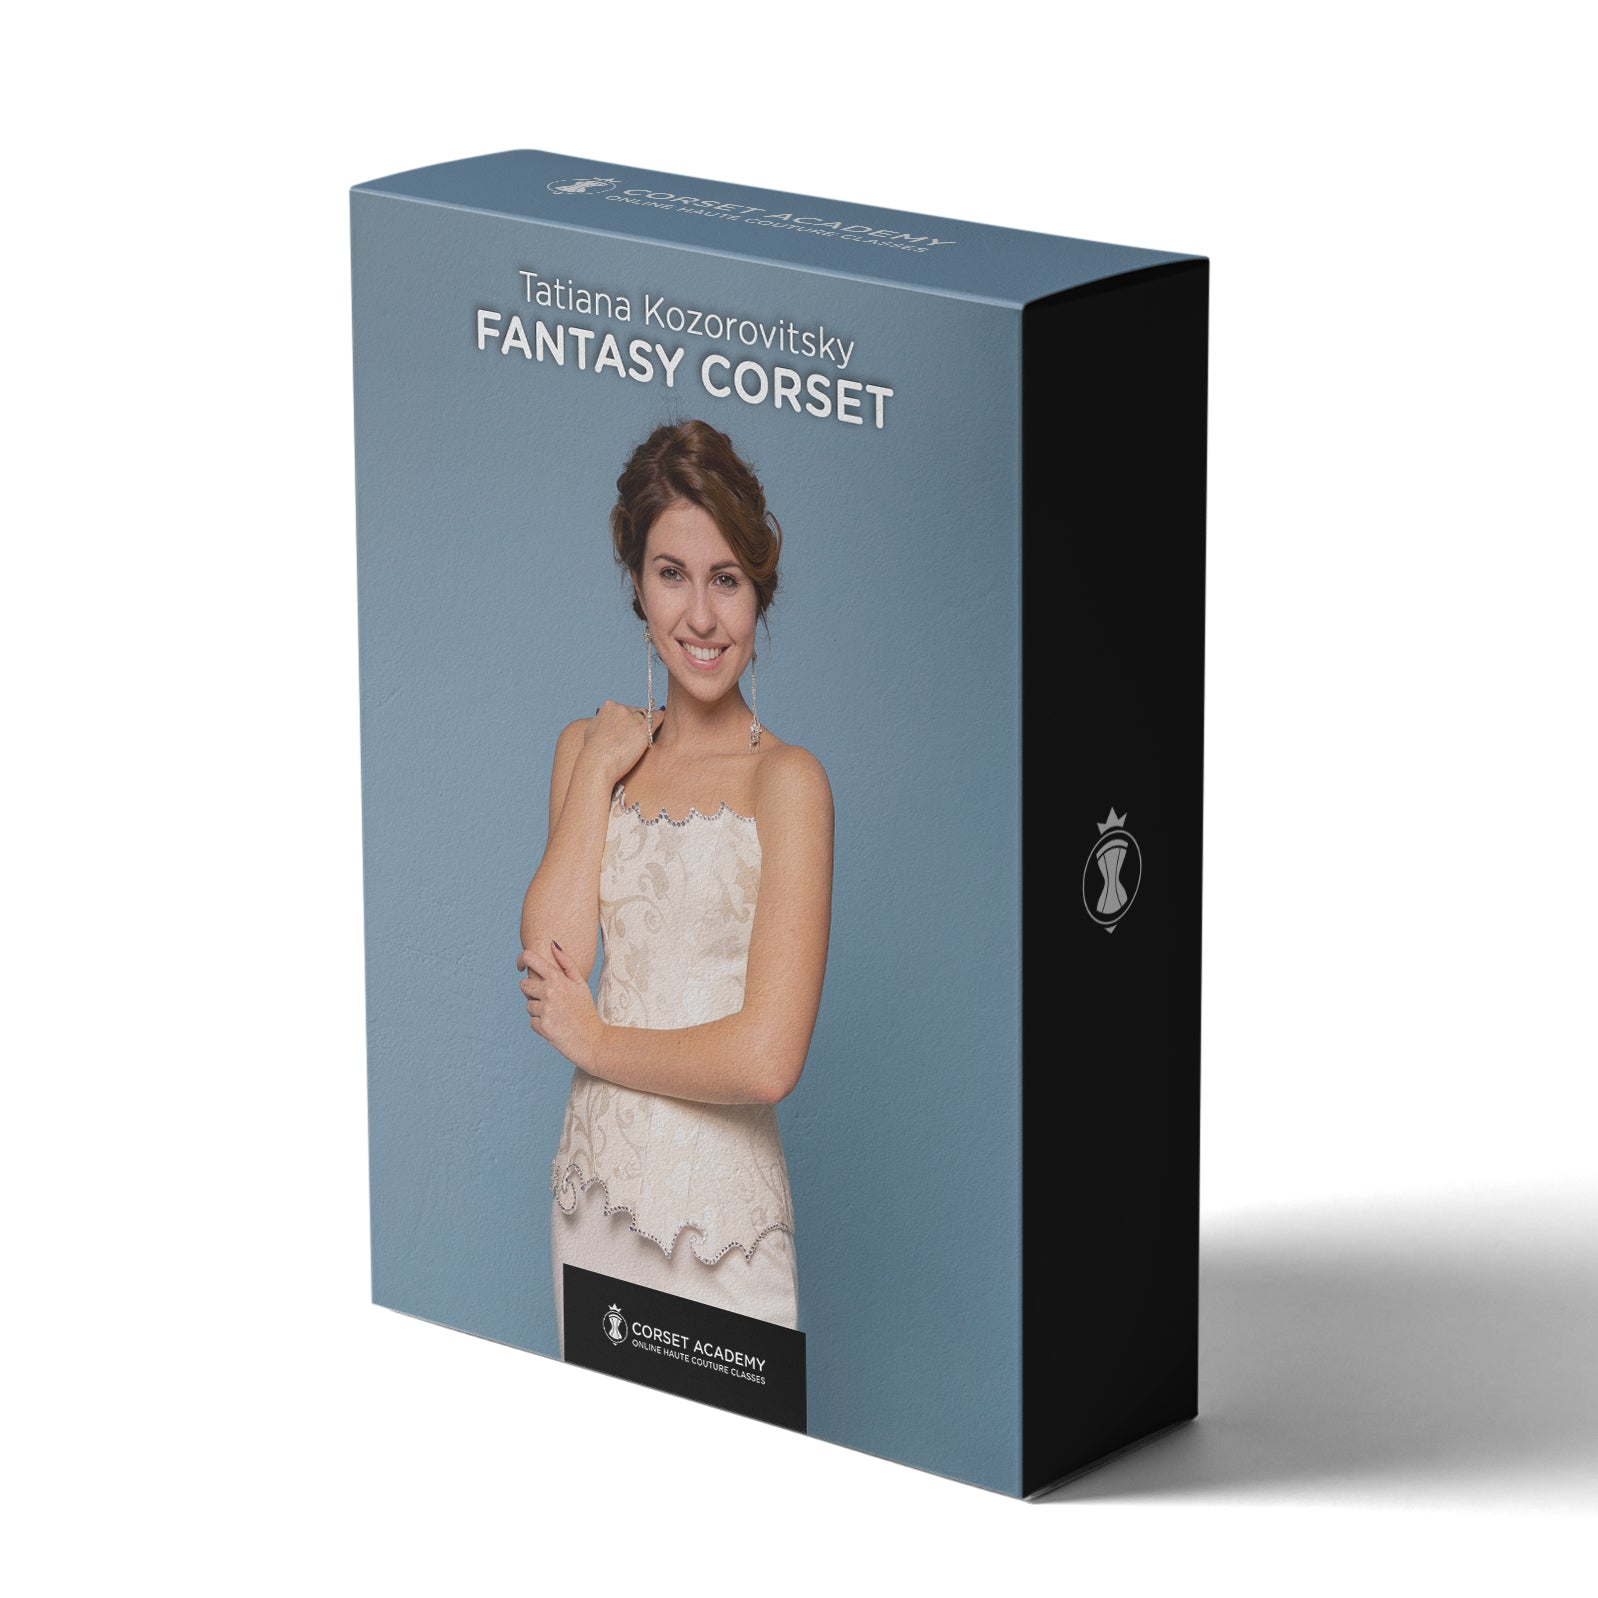 Video Course: Fantasy Corset, Video Course, Corset Academy